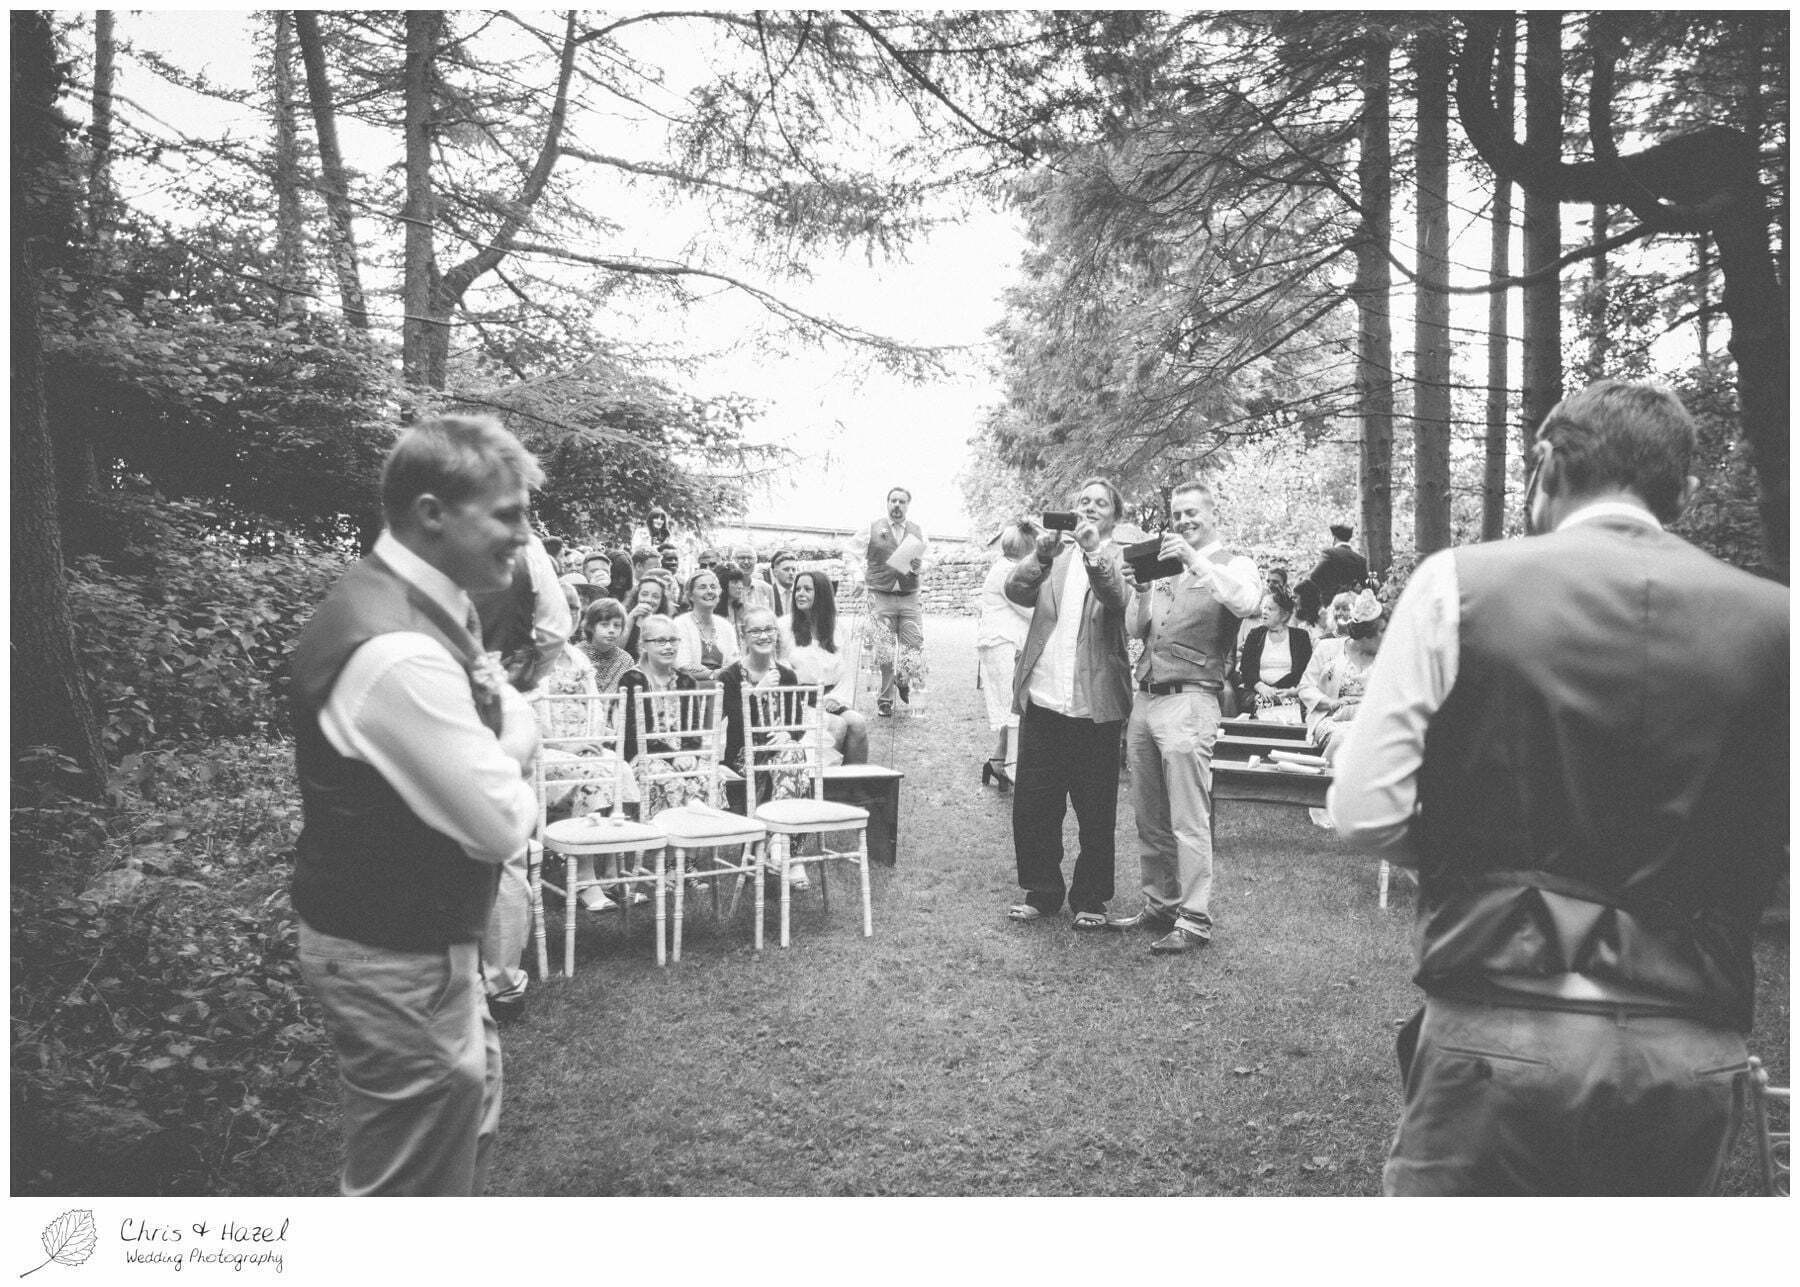 guests taking photographs, woodland, forest, ceremony, outdoor, forest wedding, woodland wedding, eco wedding, love letters, wedding, Eccup Wedding Photographer, Lineham Farm, Wedding Photography Leeds, Chris and Hazel Wedding Photography, Richard Wyatt, Laura Kelly